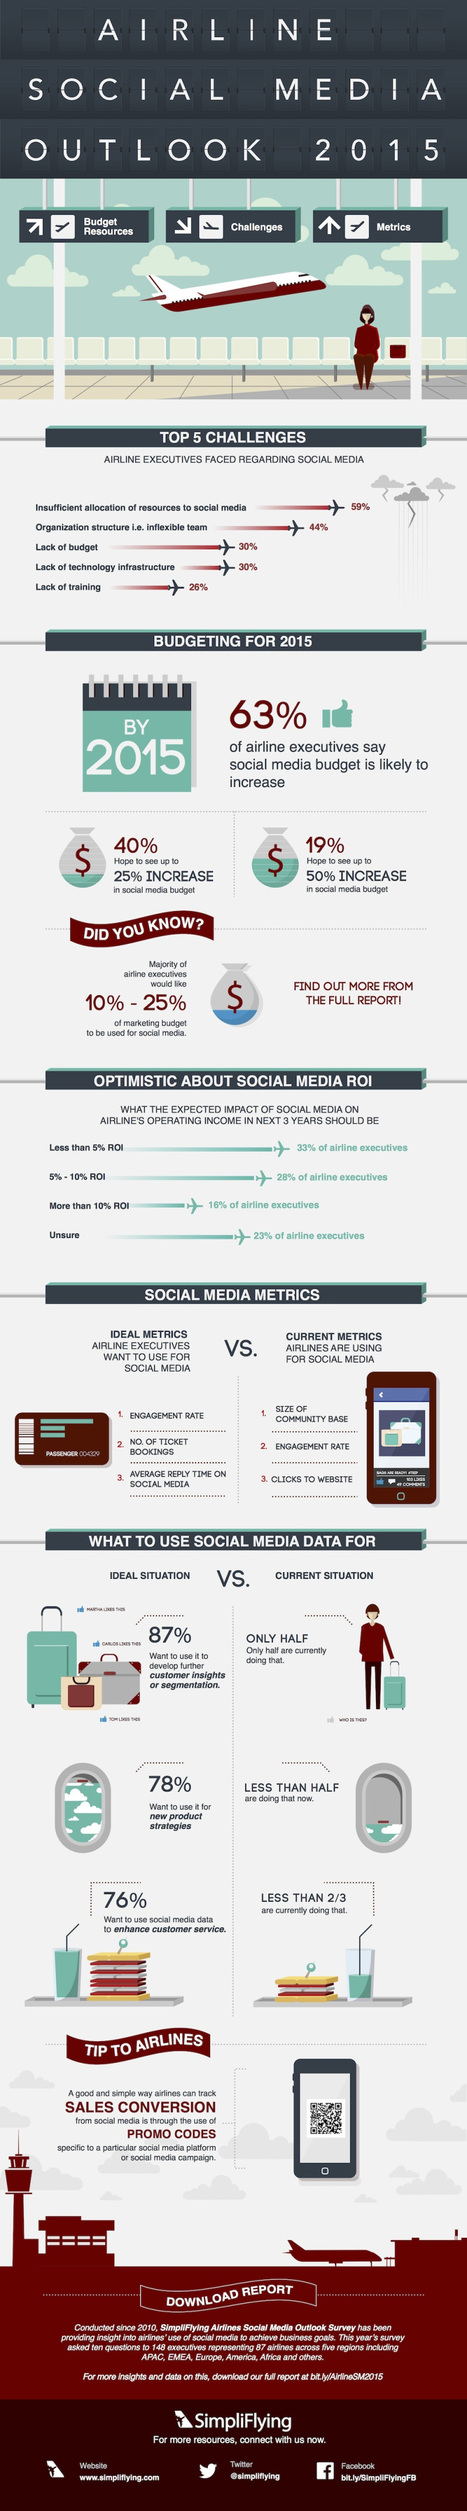 Airline Social Media Outlook 2015: Budget, Challenges and Metrics #infographic | MarketingHits | Scoop.it